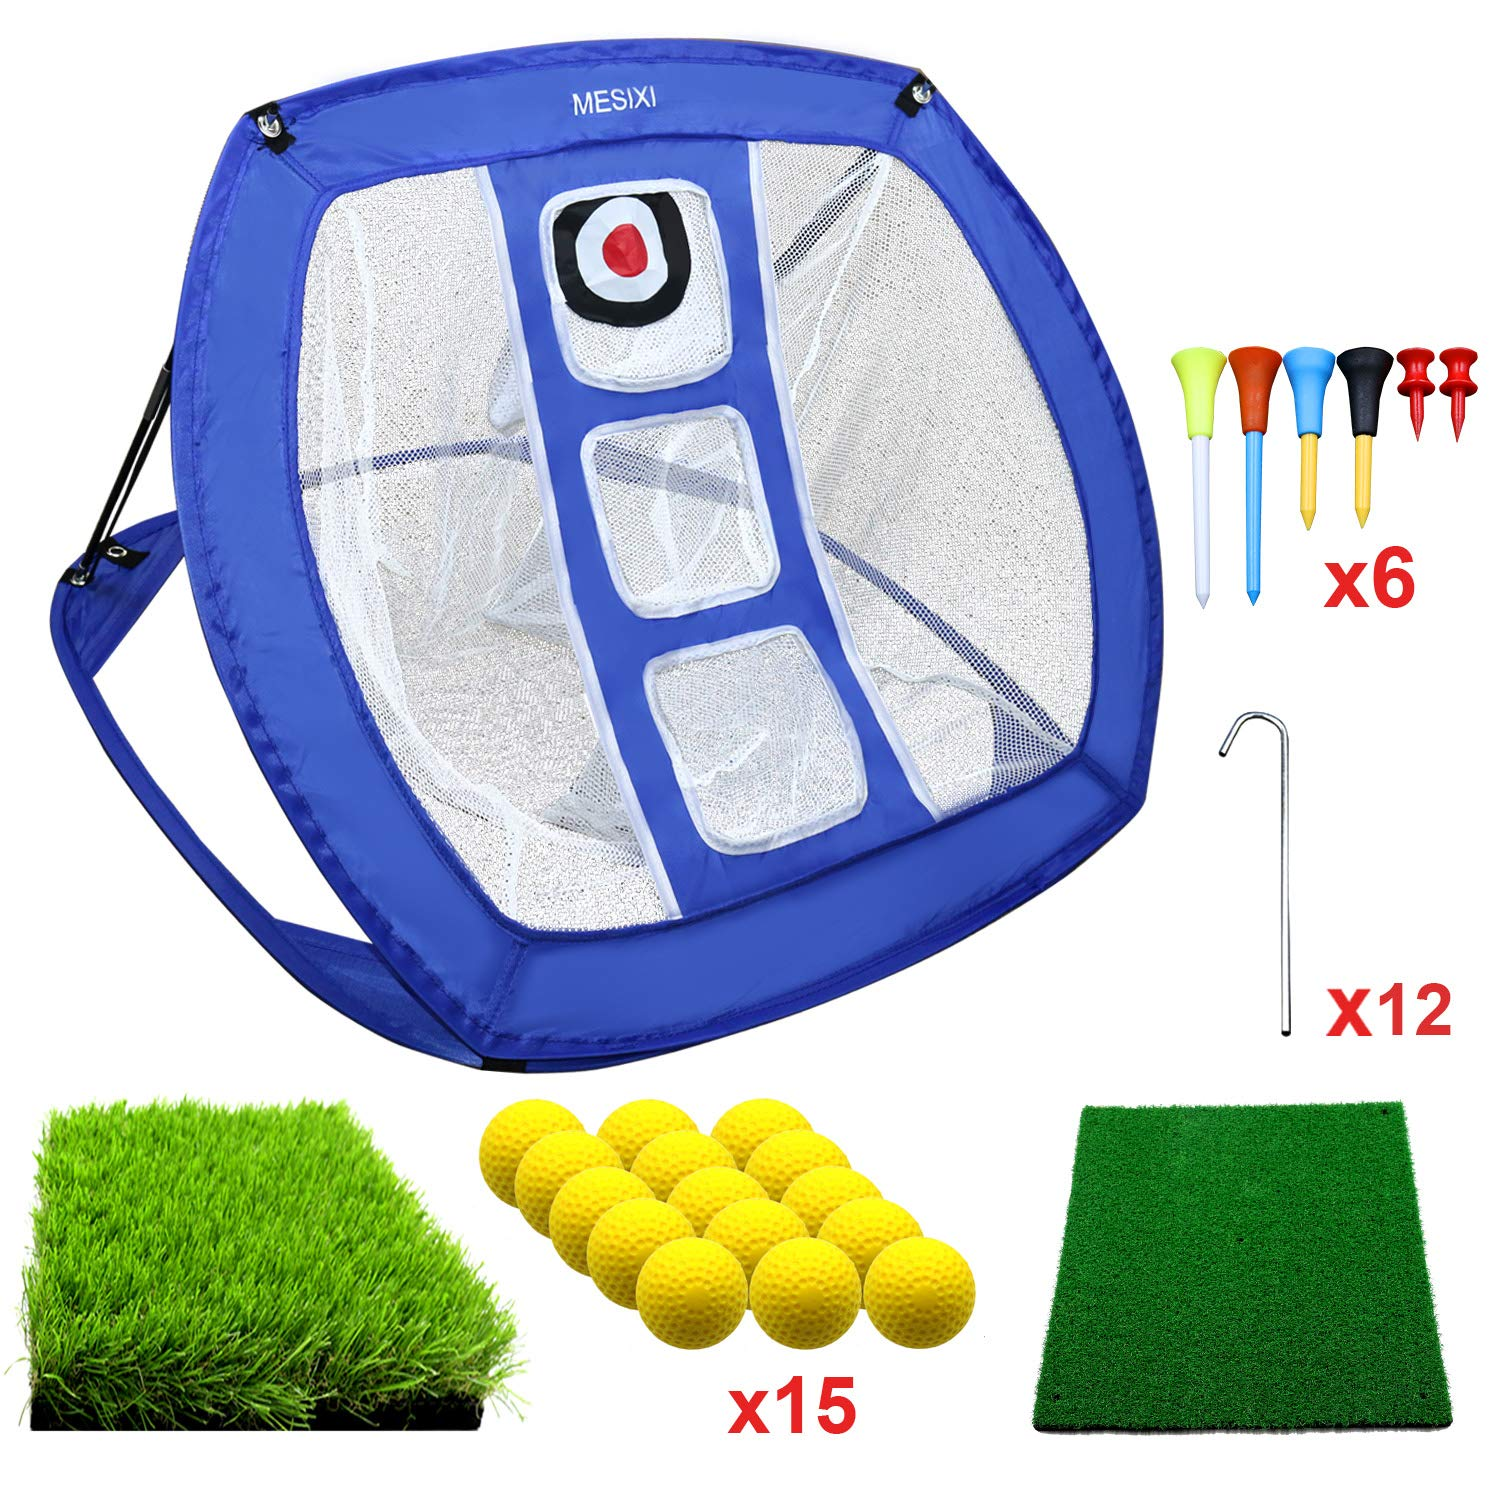 Pop Up Golf Chipping Net | Perfect Golf Gifts for Men Kids, Outdoor Indoor Mini Putting Green Golfing Target Accessories Backyard Practice Swing Funny Game with 15 Training Balls and Two Hitting Mats by MESIXI